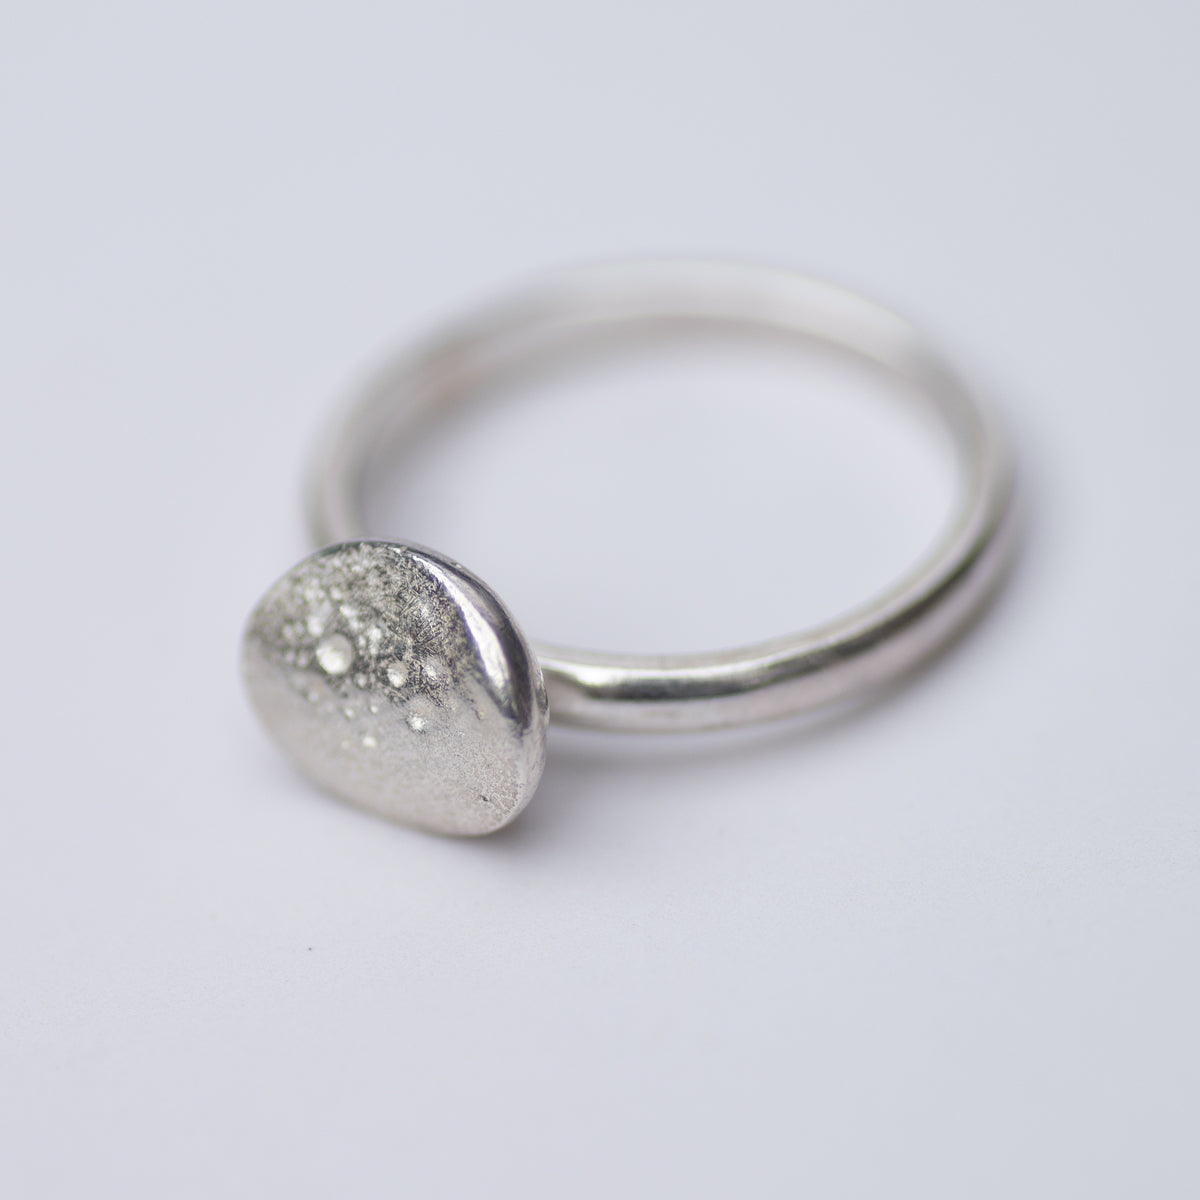 Small Silver Pebble Ring